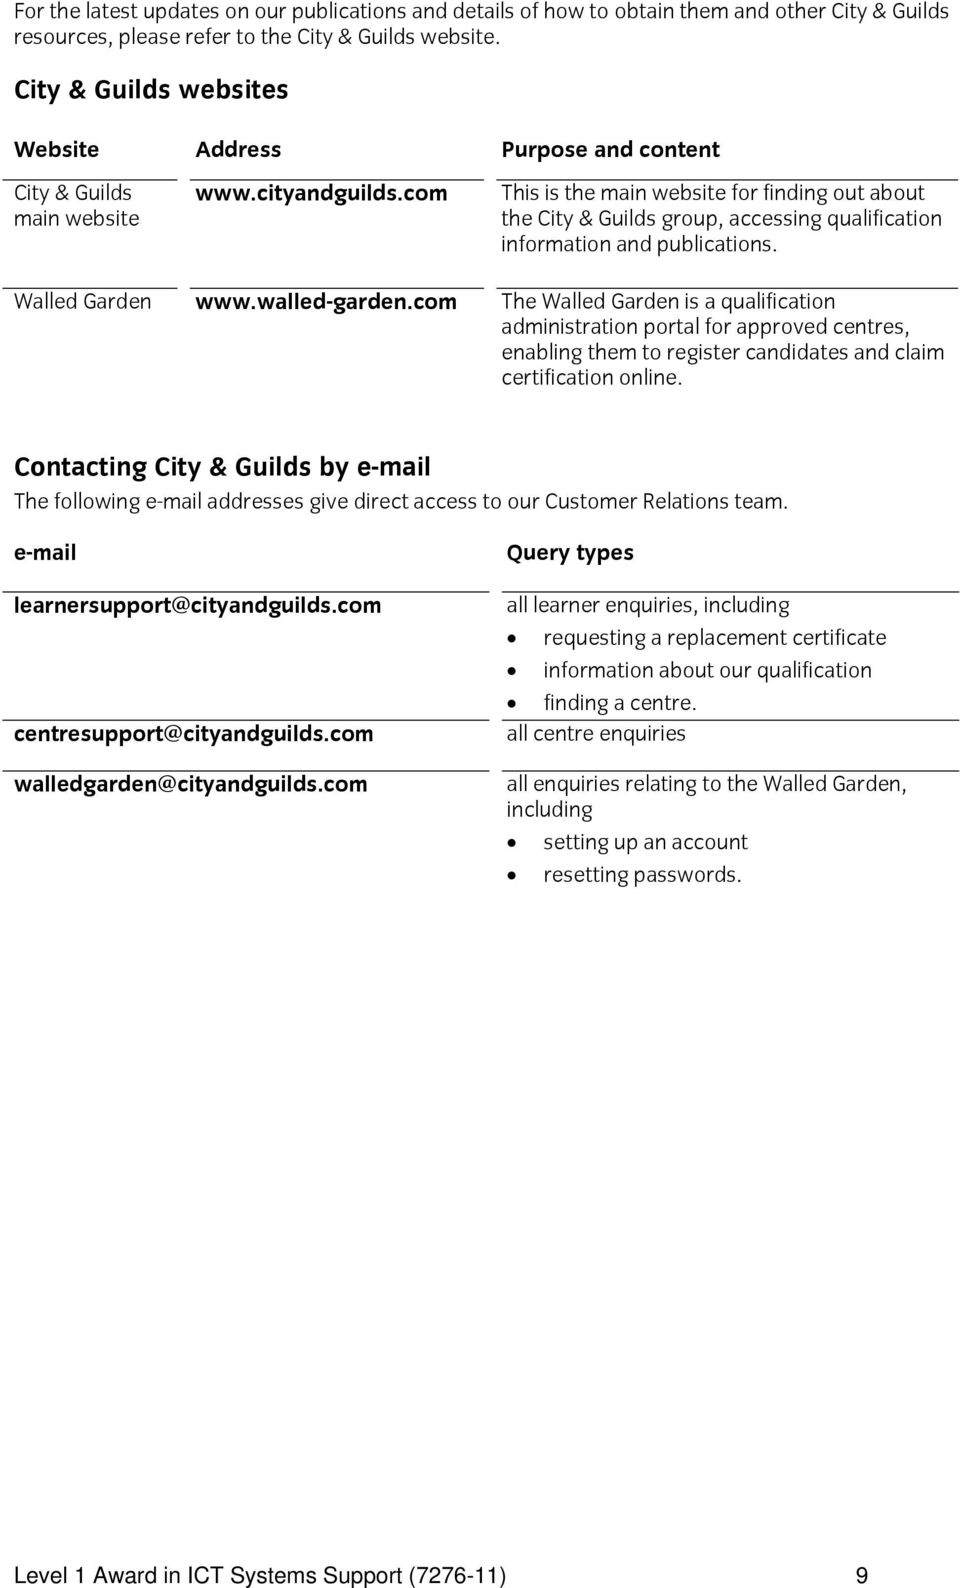 com This is the main website for finding out about the City & Guilds group, accessing qualification information and publications. Walled Garden www.walled-garden.